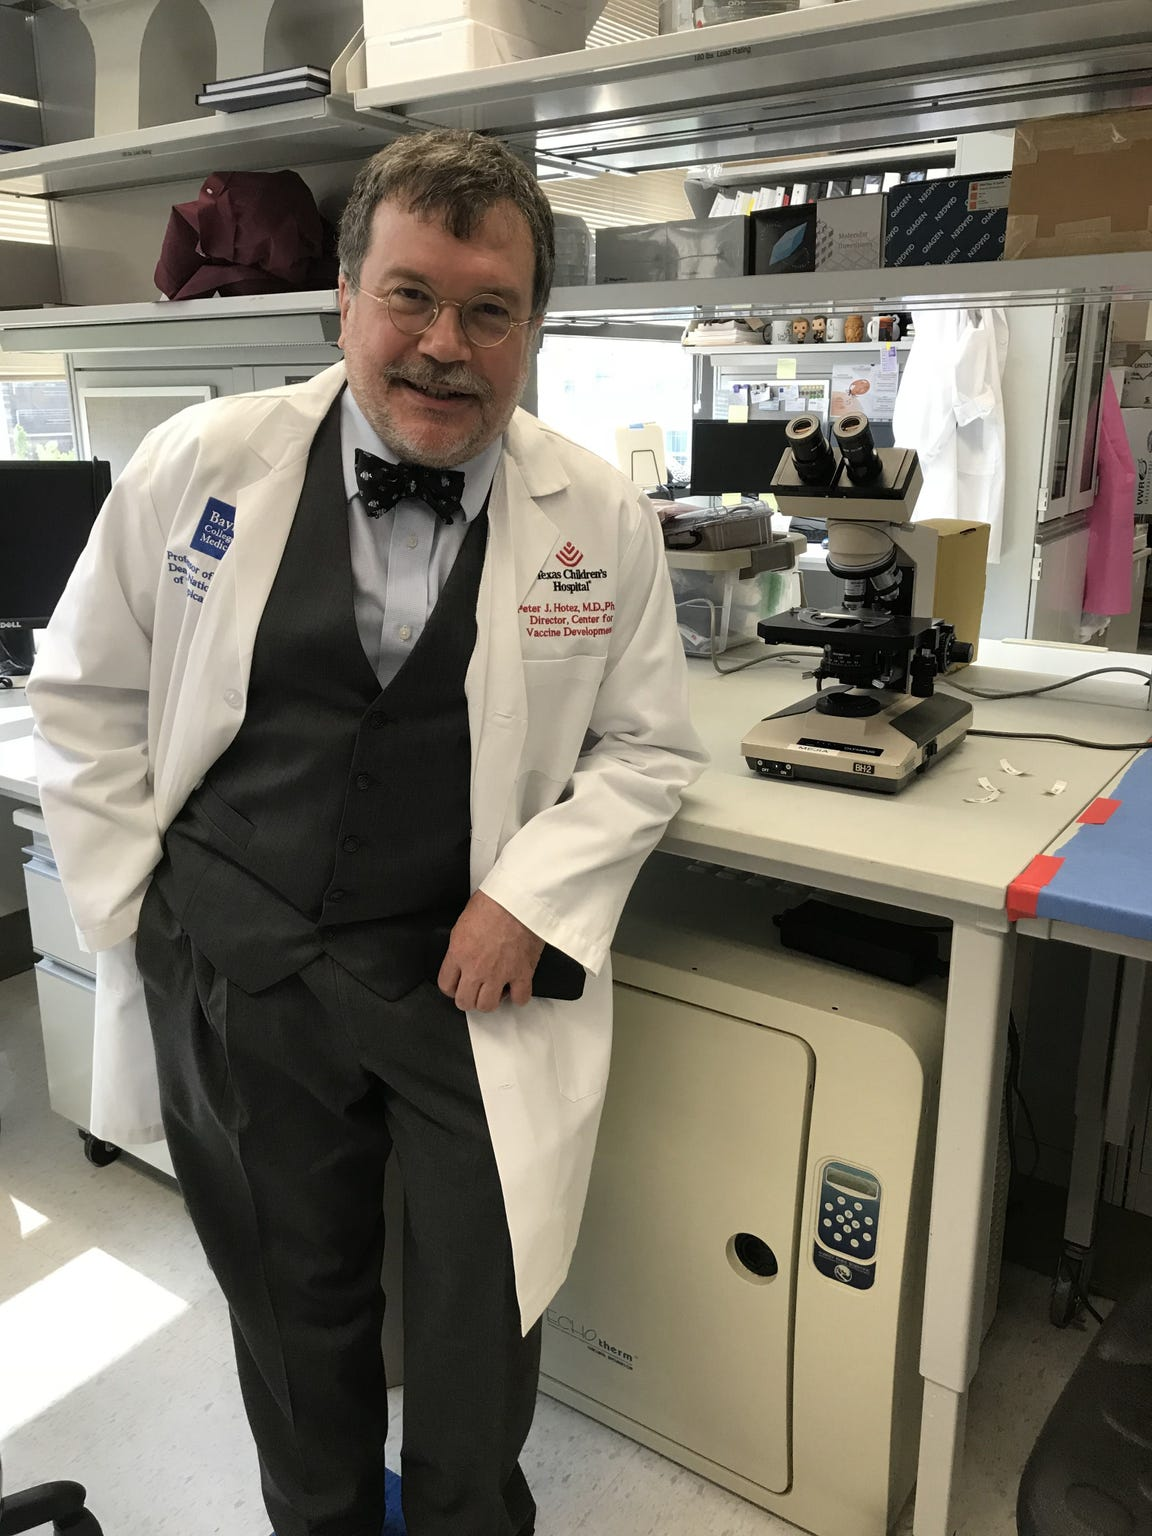 Dr. Peter Hotez is the dean for the National School